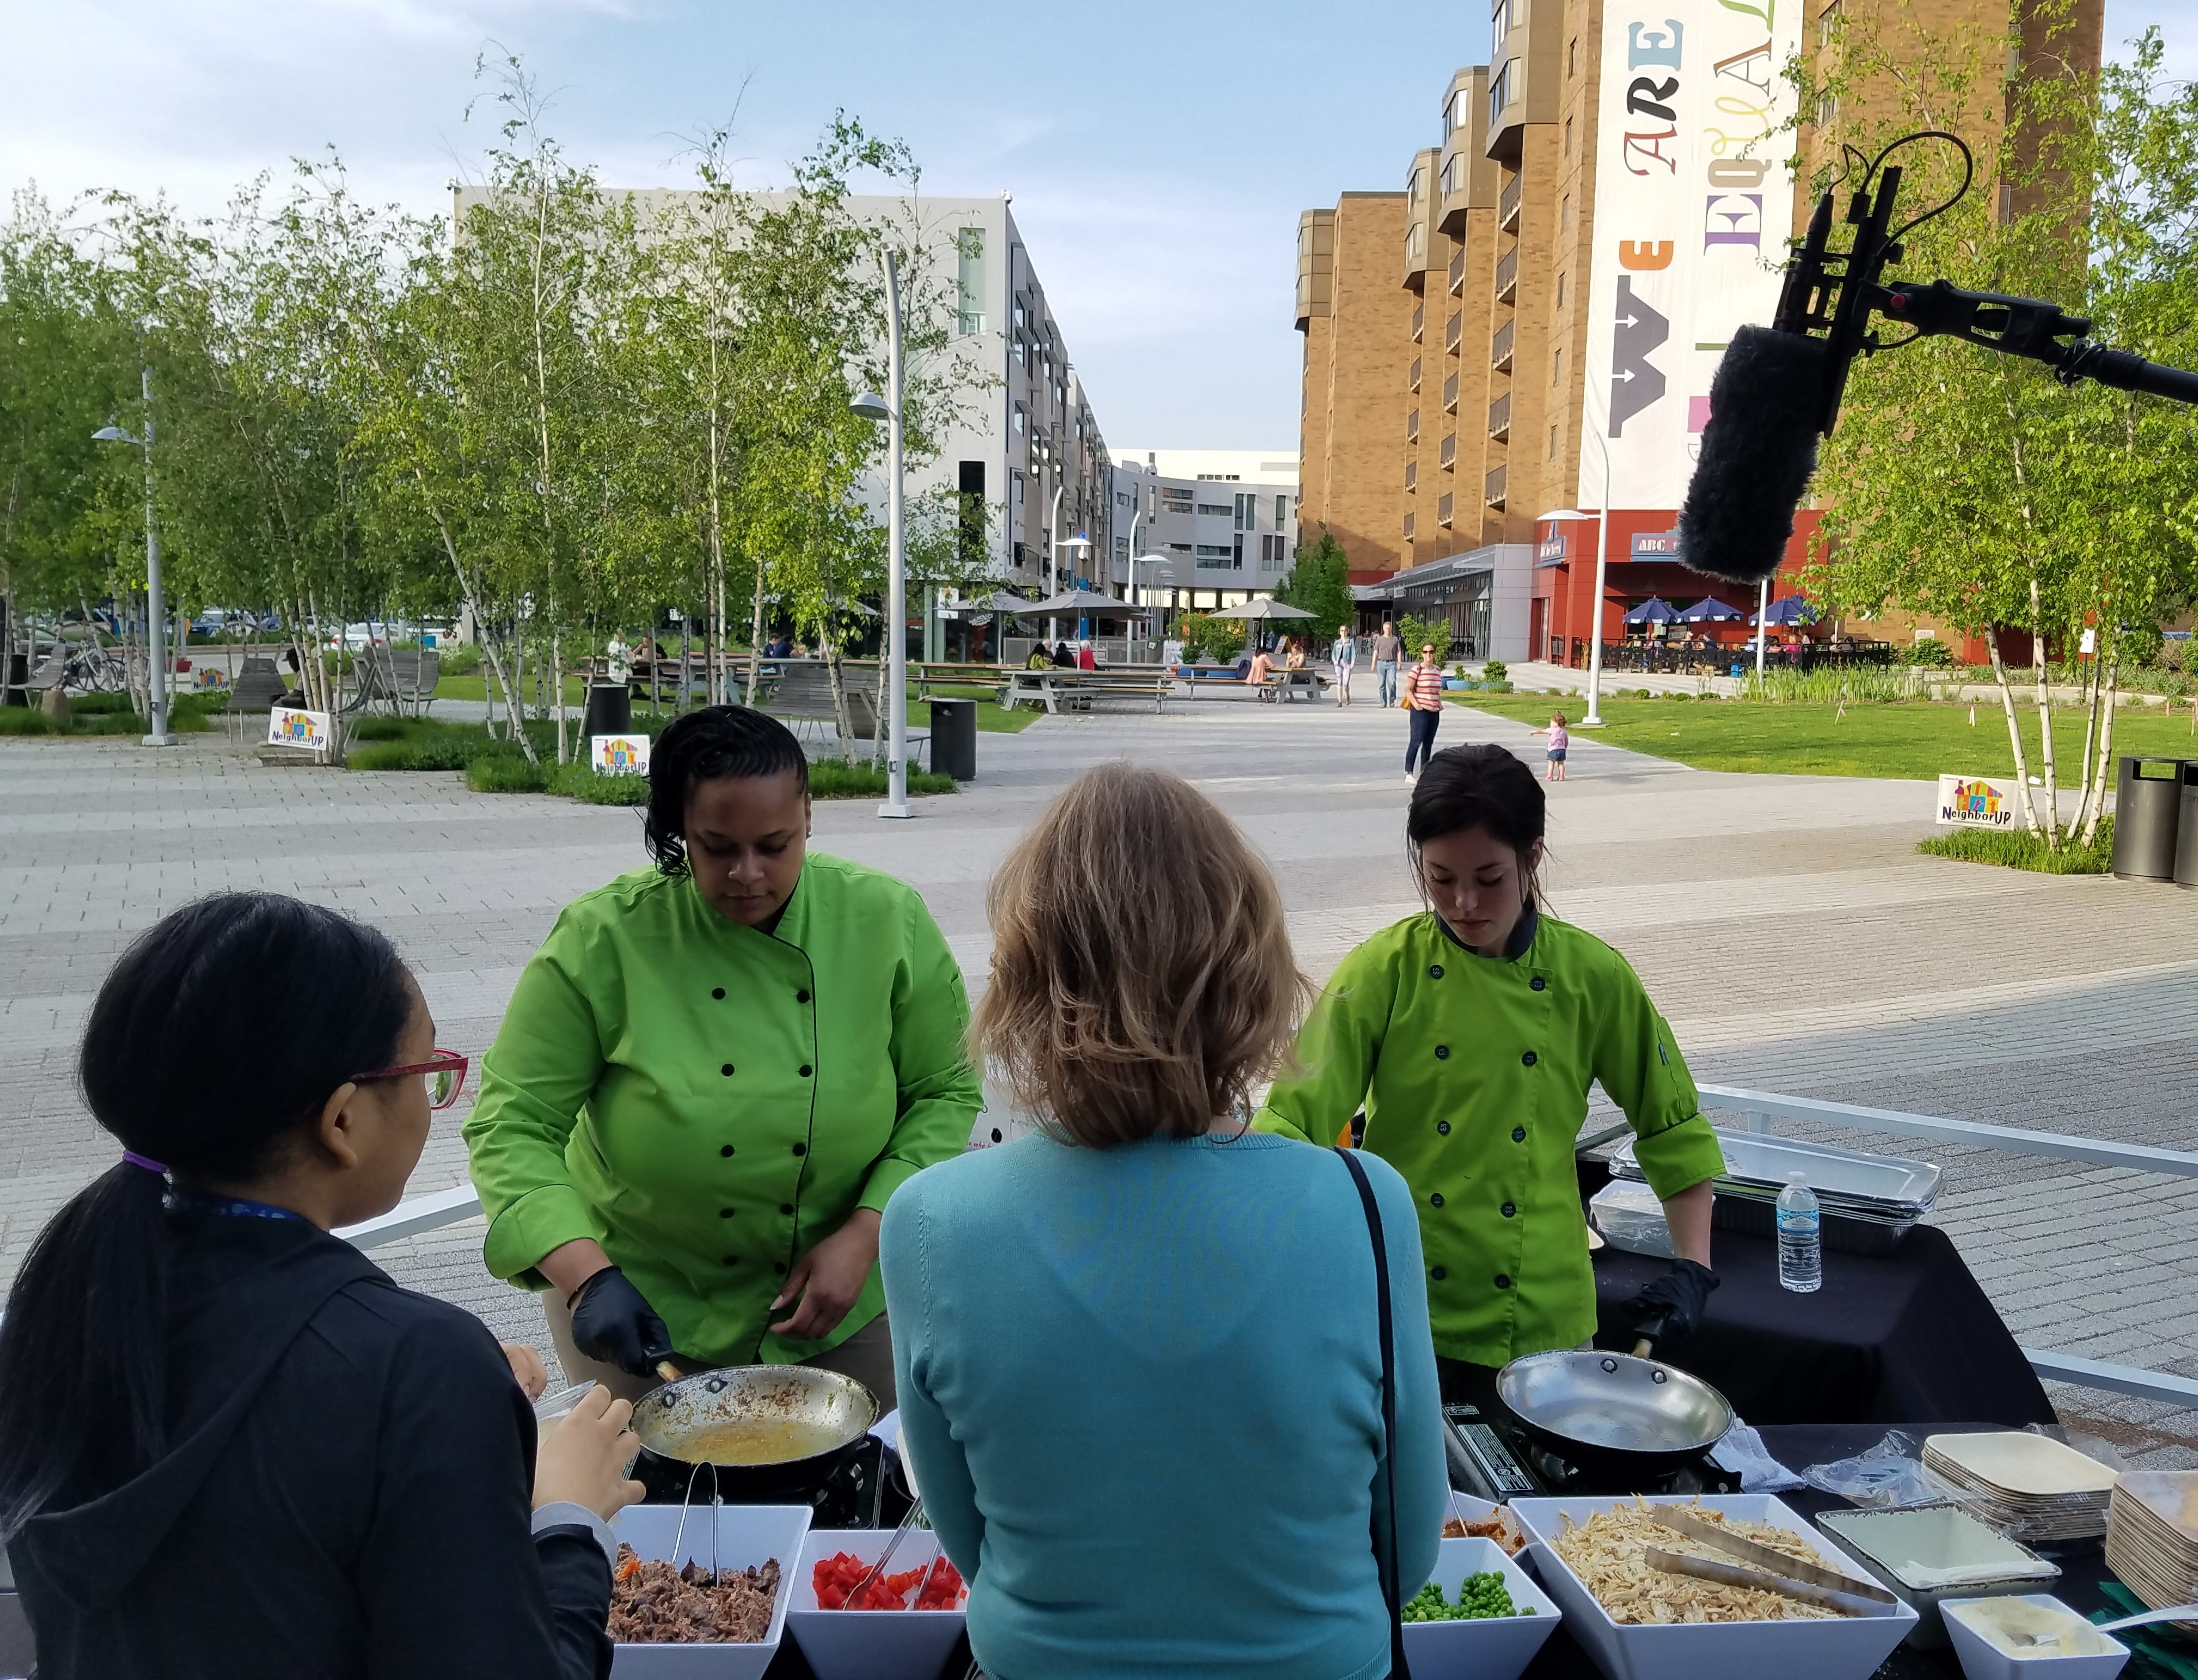 LMM Culinary Students in Uptown Cleveland